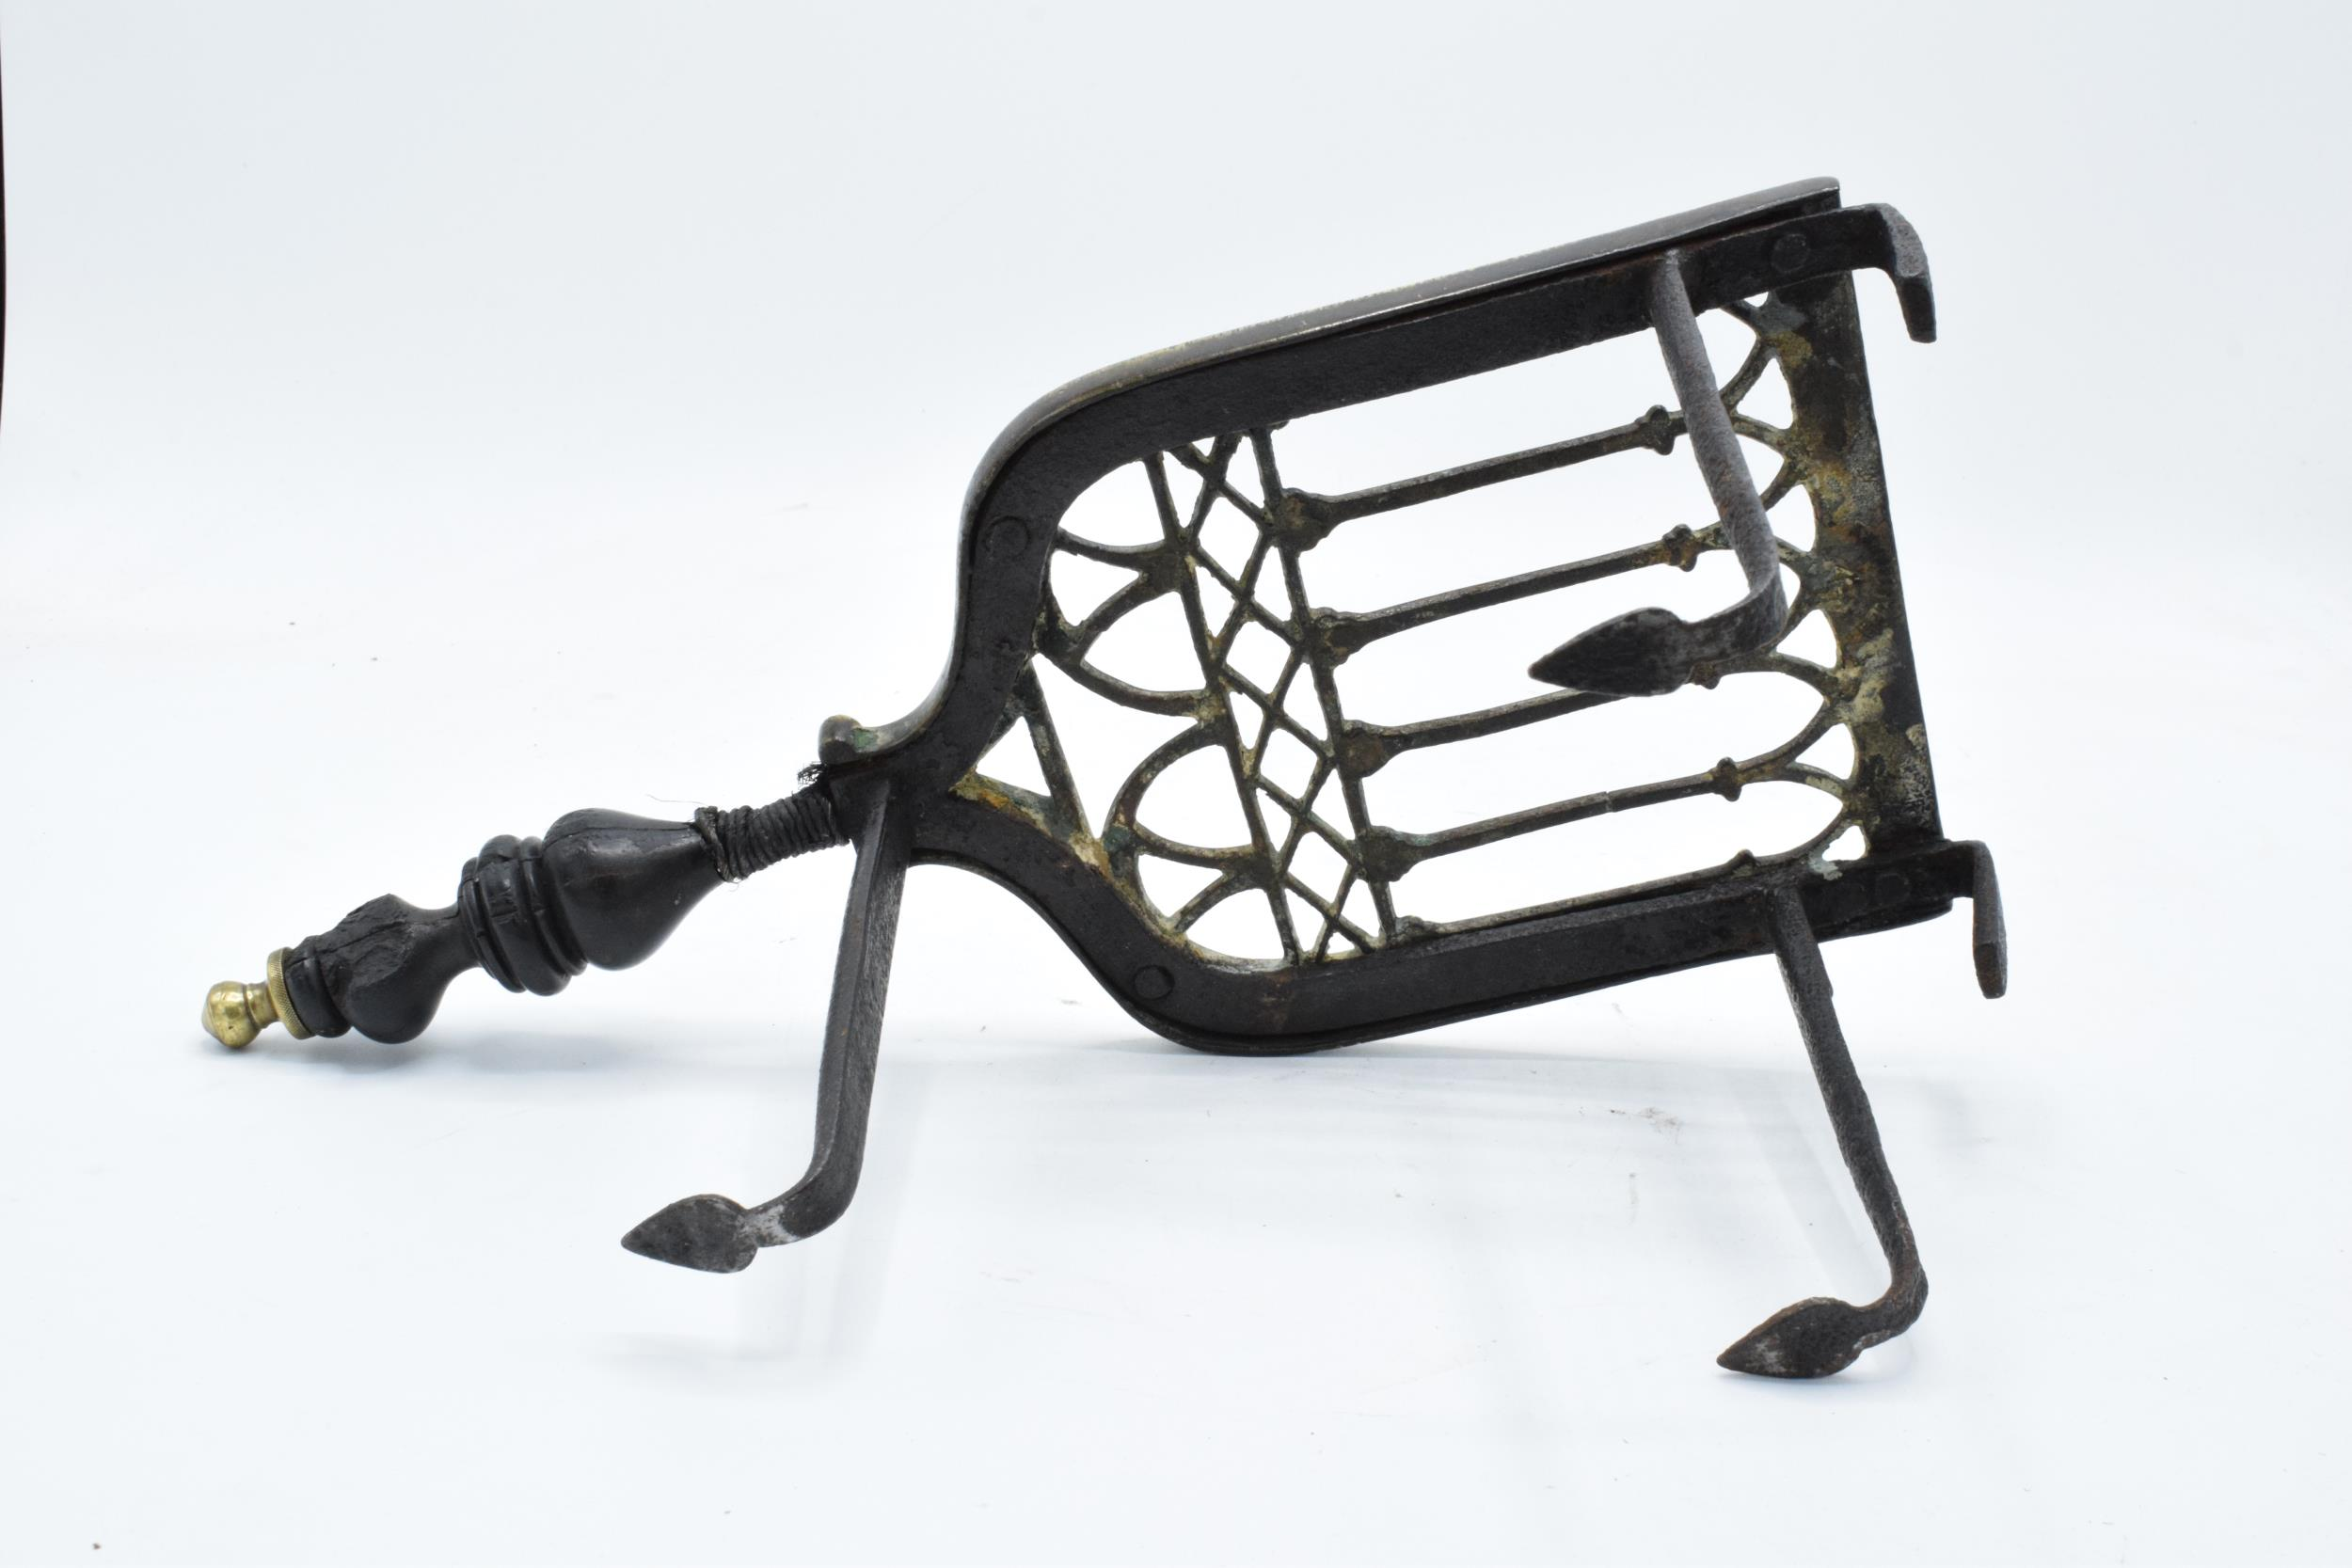 Victorian brass and iron trivet with wooden handle (some chipping to wood). - Image 6 of 6